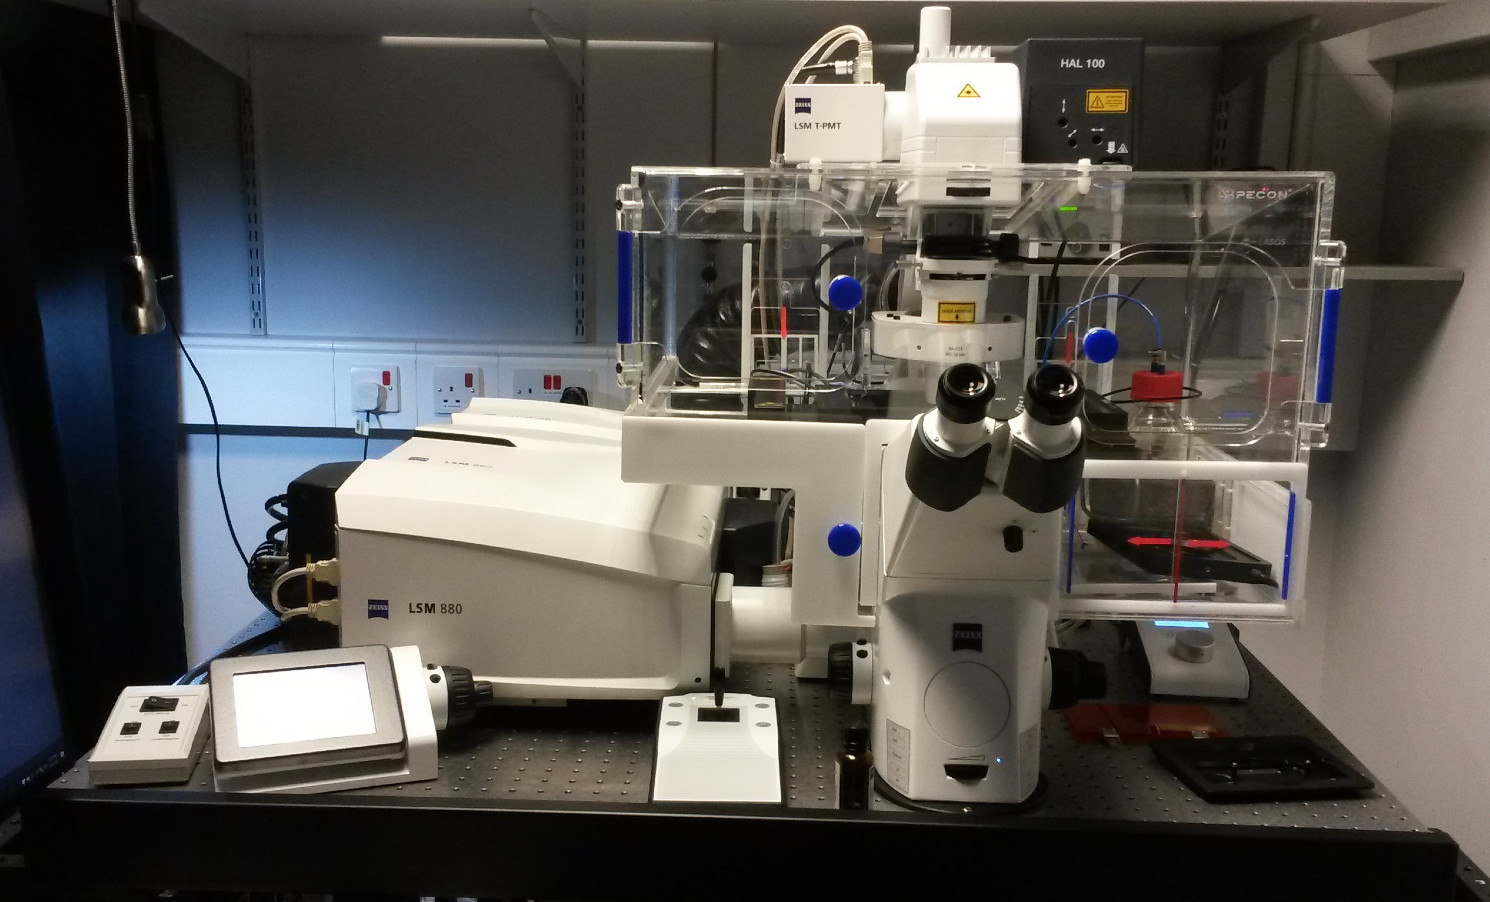 Picture of the Zeiss LSM 880 Confocal Microscope with Airyscan Fast installed at Barts Cancer Institute